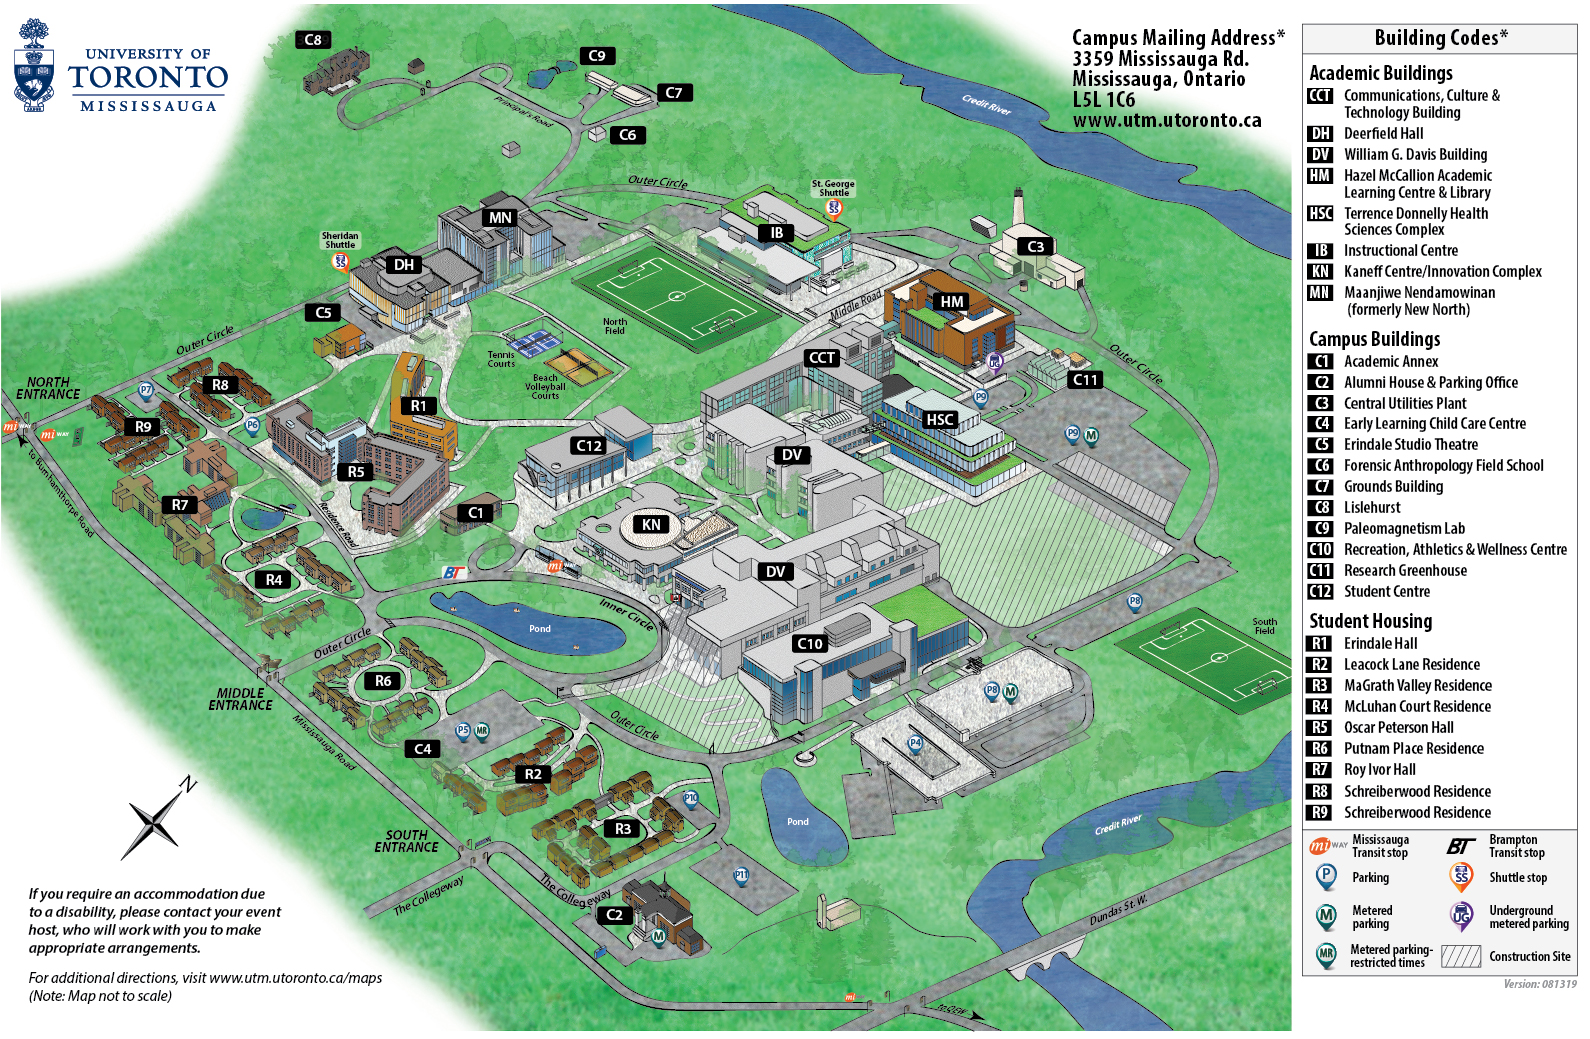 u of t campus map Maps Directions University Of Toronto Mississauga